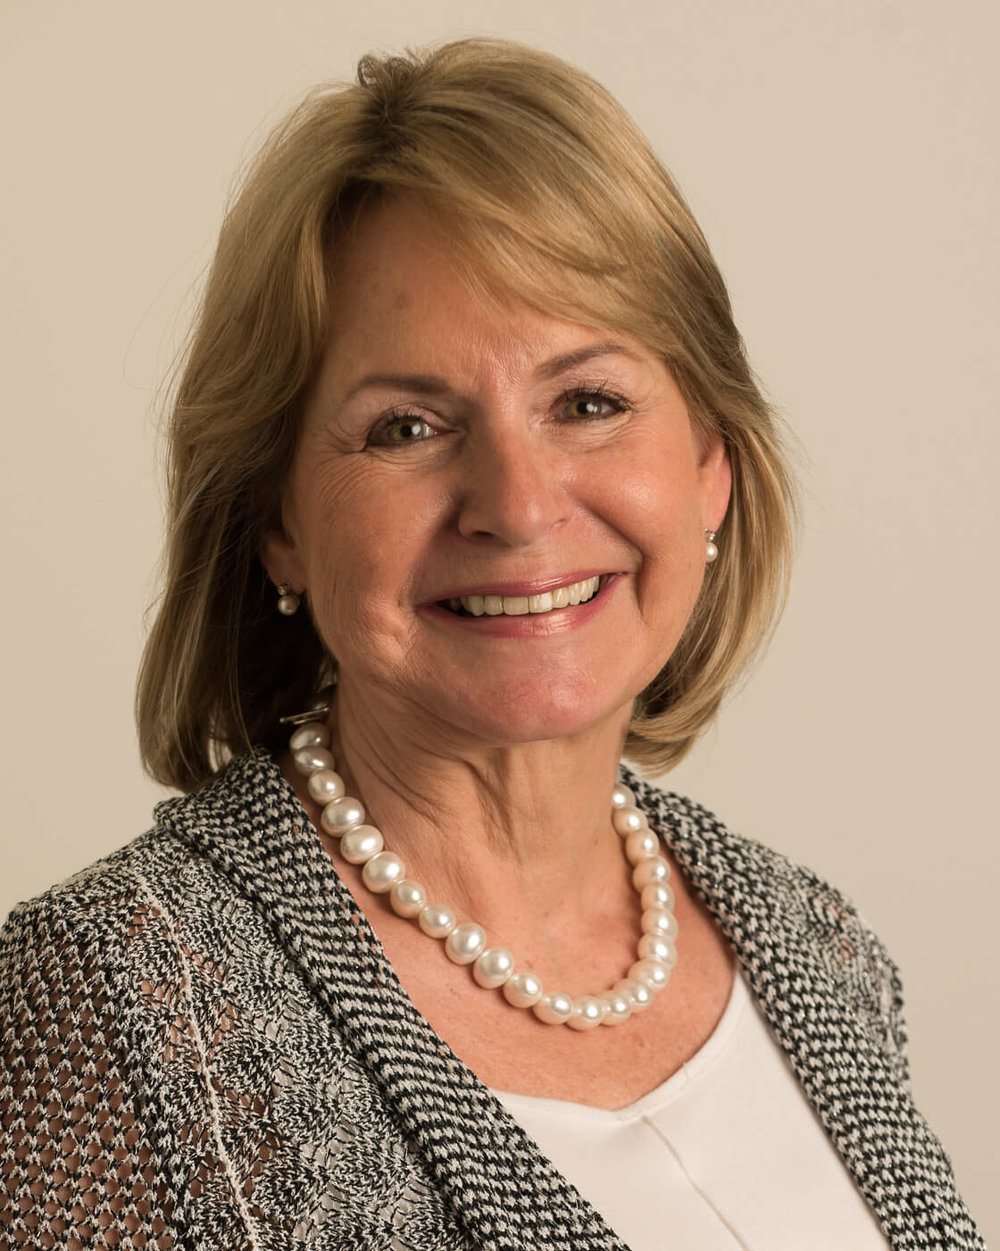 """Barbara Schönhofer - Executive Vice President and Chief Executive Officer, International Executive Search, for The Jacobson GroupDecember Luncheon 2015""""Behaviours and Leadership skills required for the C-Suite."""""""